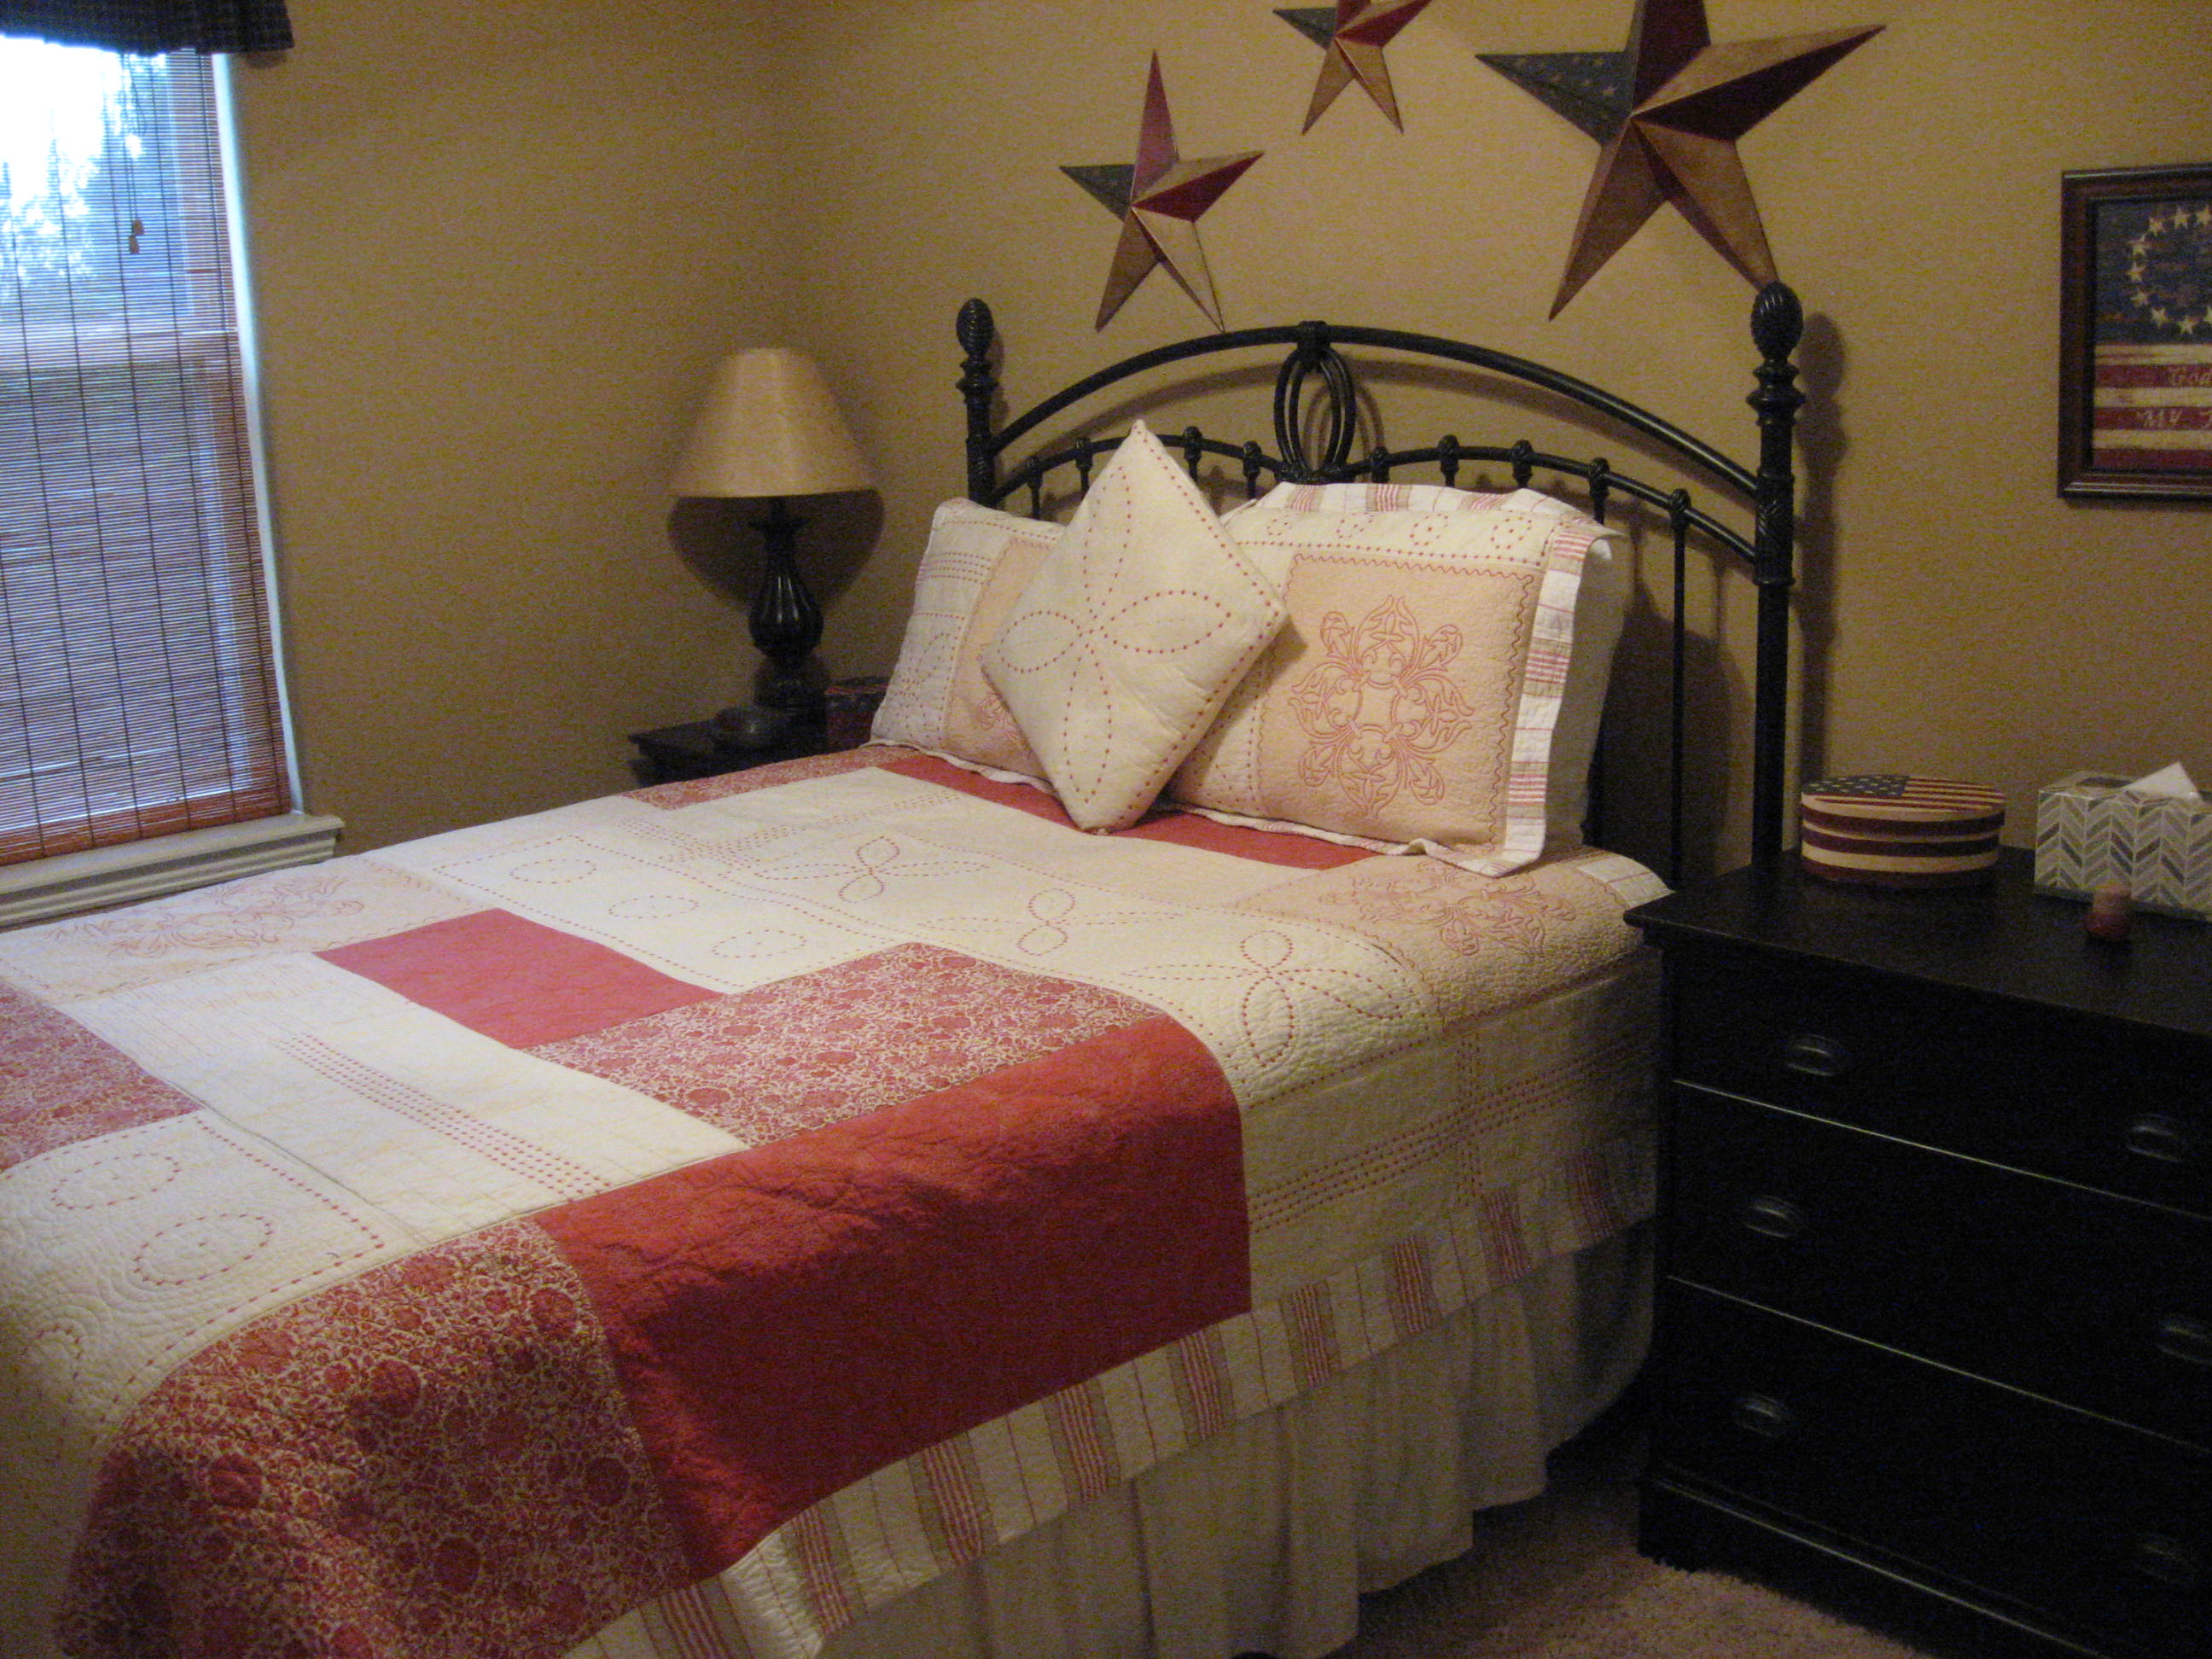 Branson Canyon Vacation Rentals Reunion Rendezvous Patriot's room (Queen)